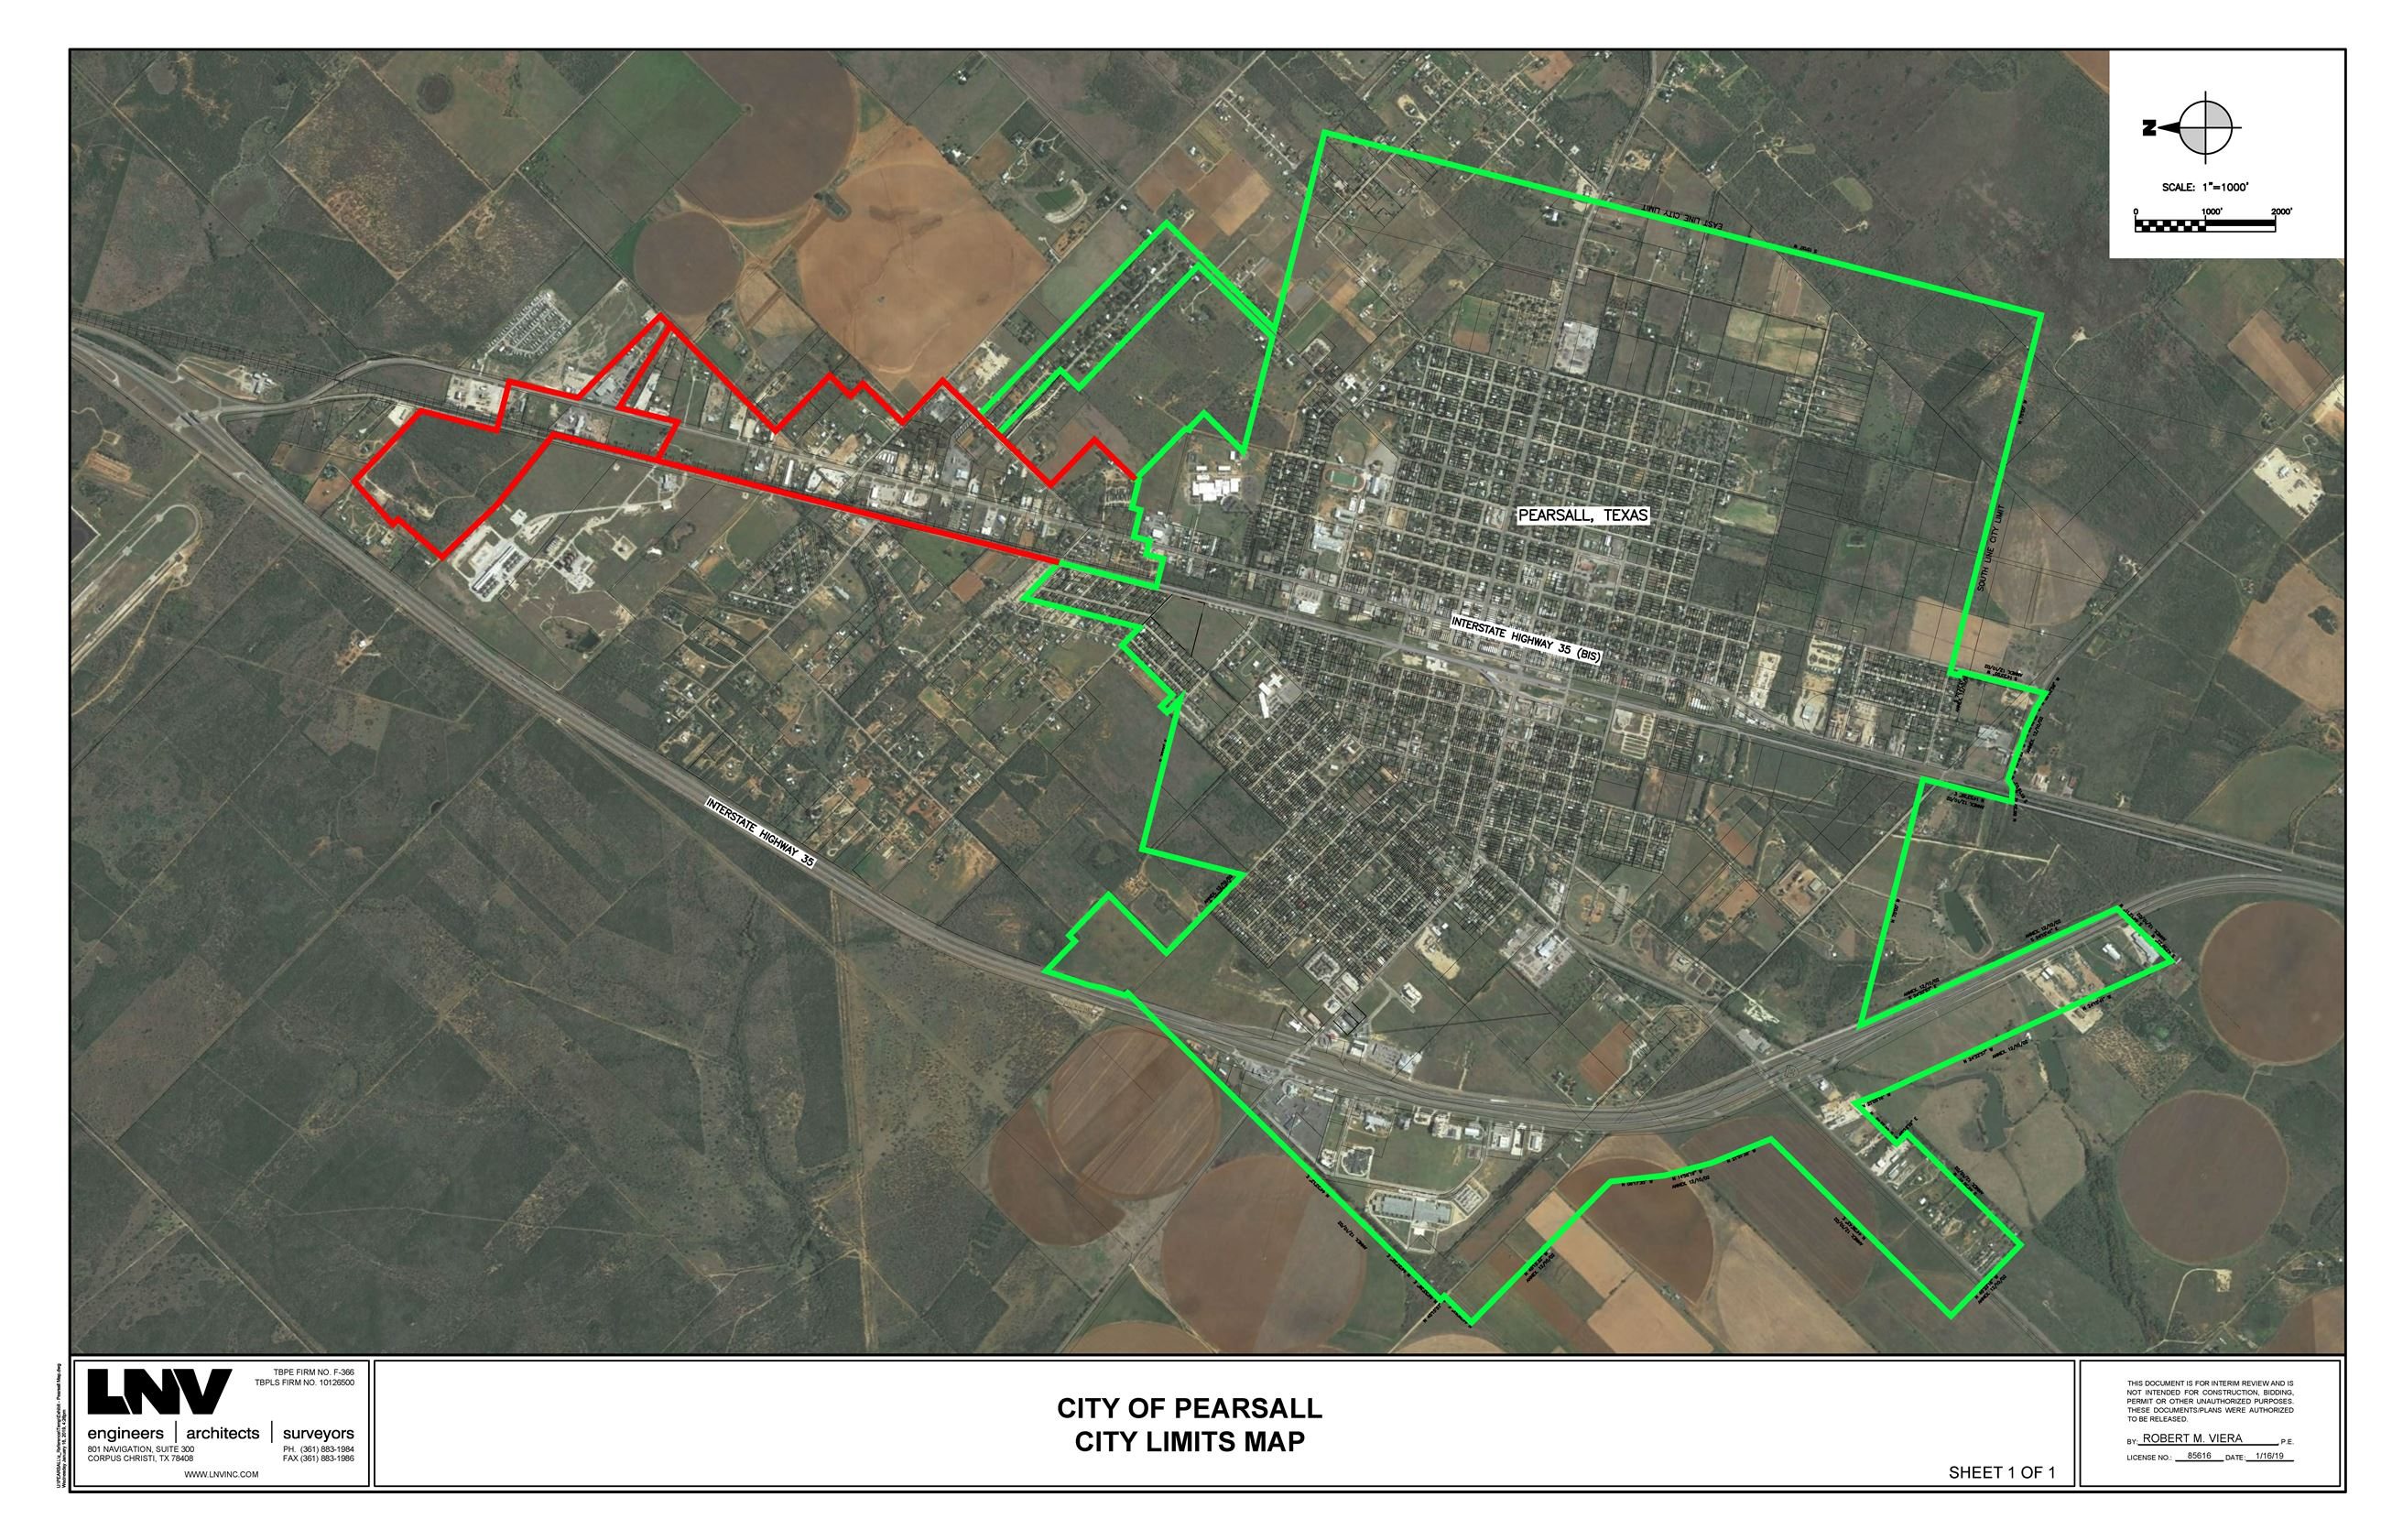 Pearsall City Limits Map 2019